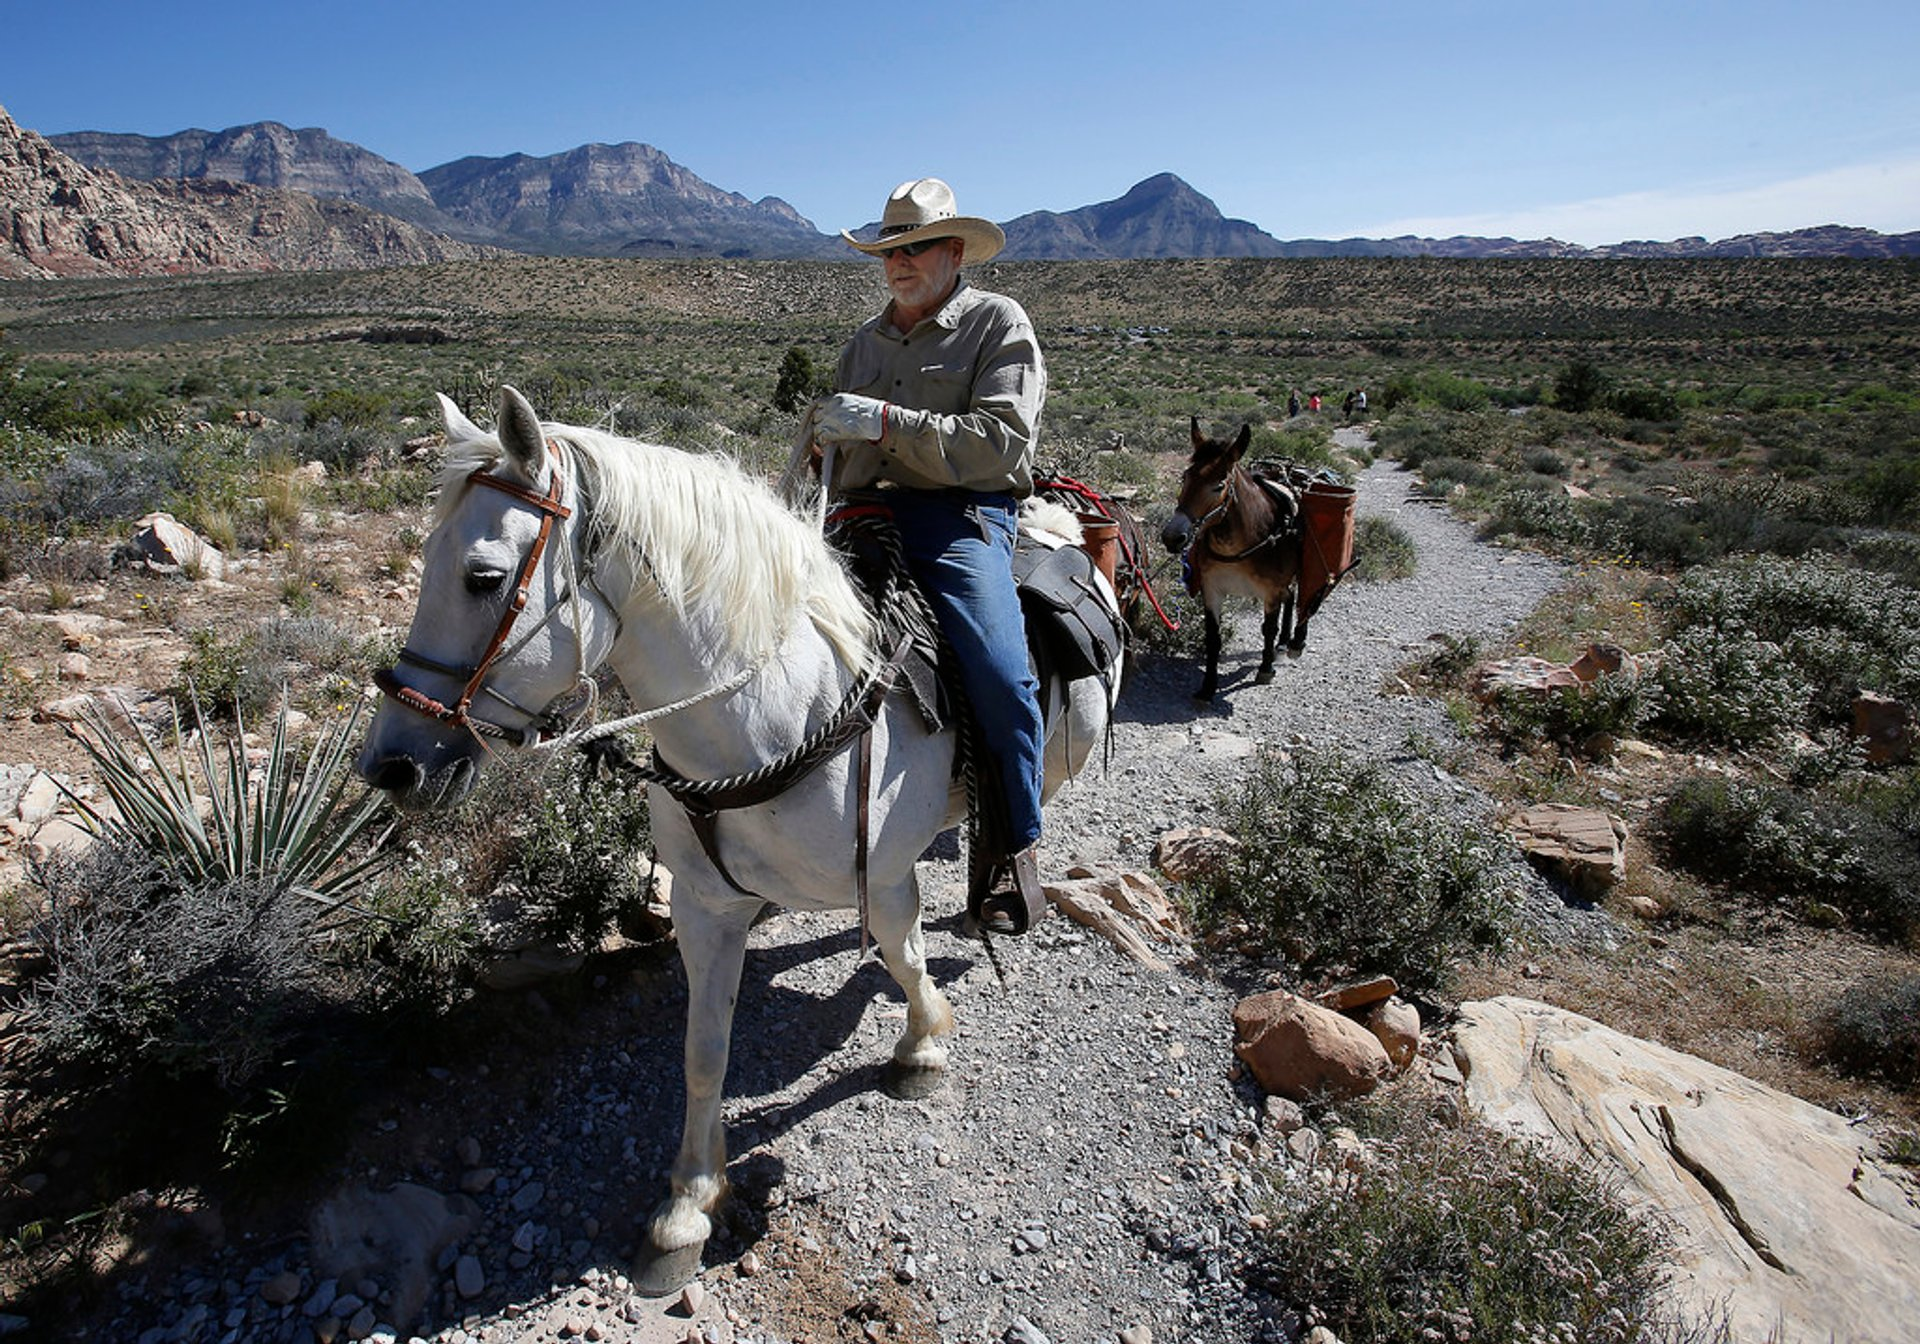 Horseback Riding through Red Rock Canyon in Nevada - Best Season 2020